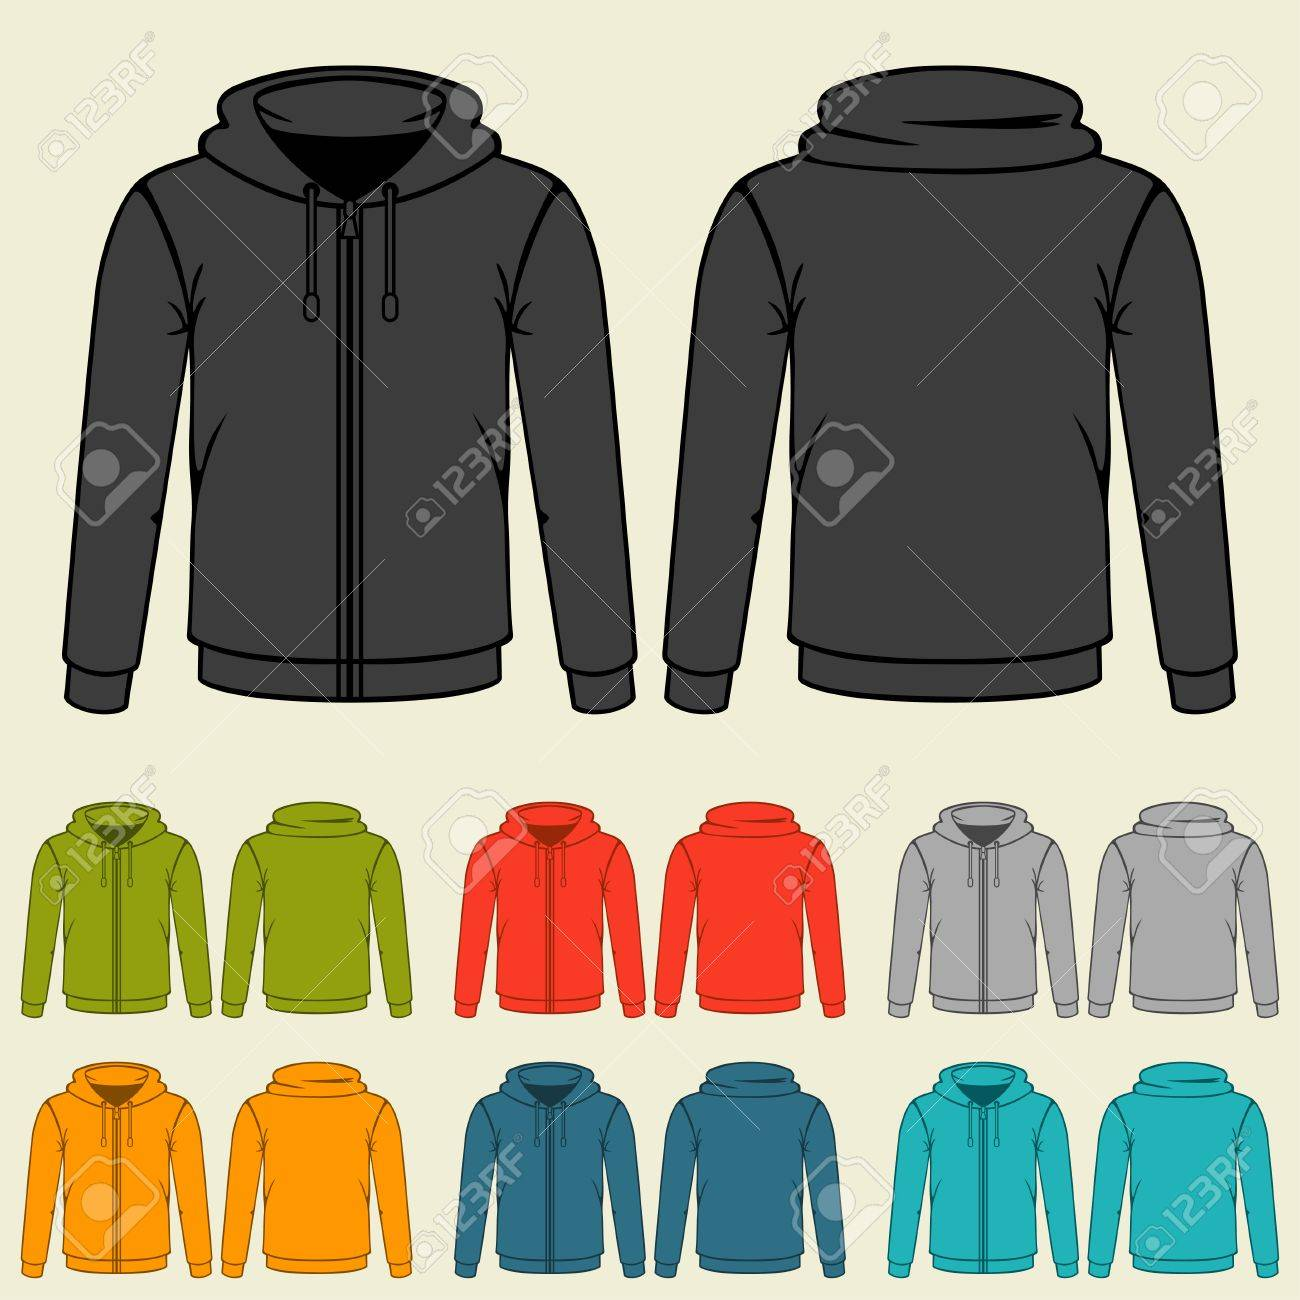 Set Of Templates Colored Sweatshirts For Men. Royalty Free Cliparts ...